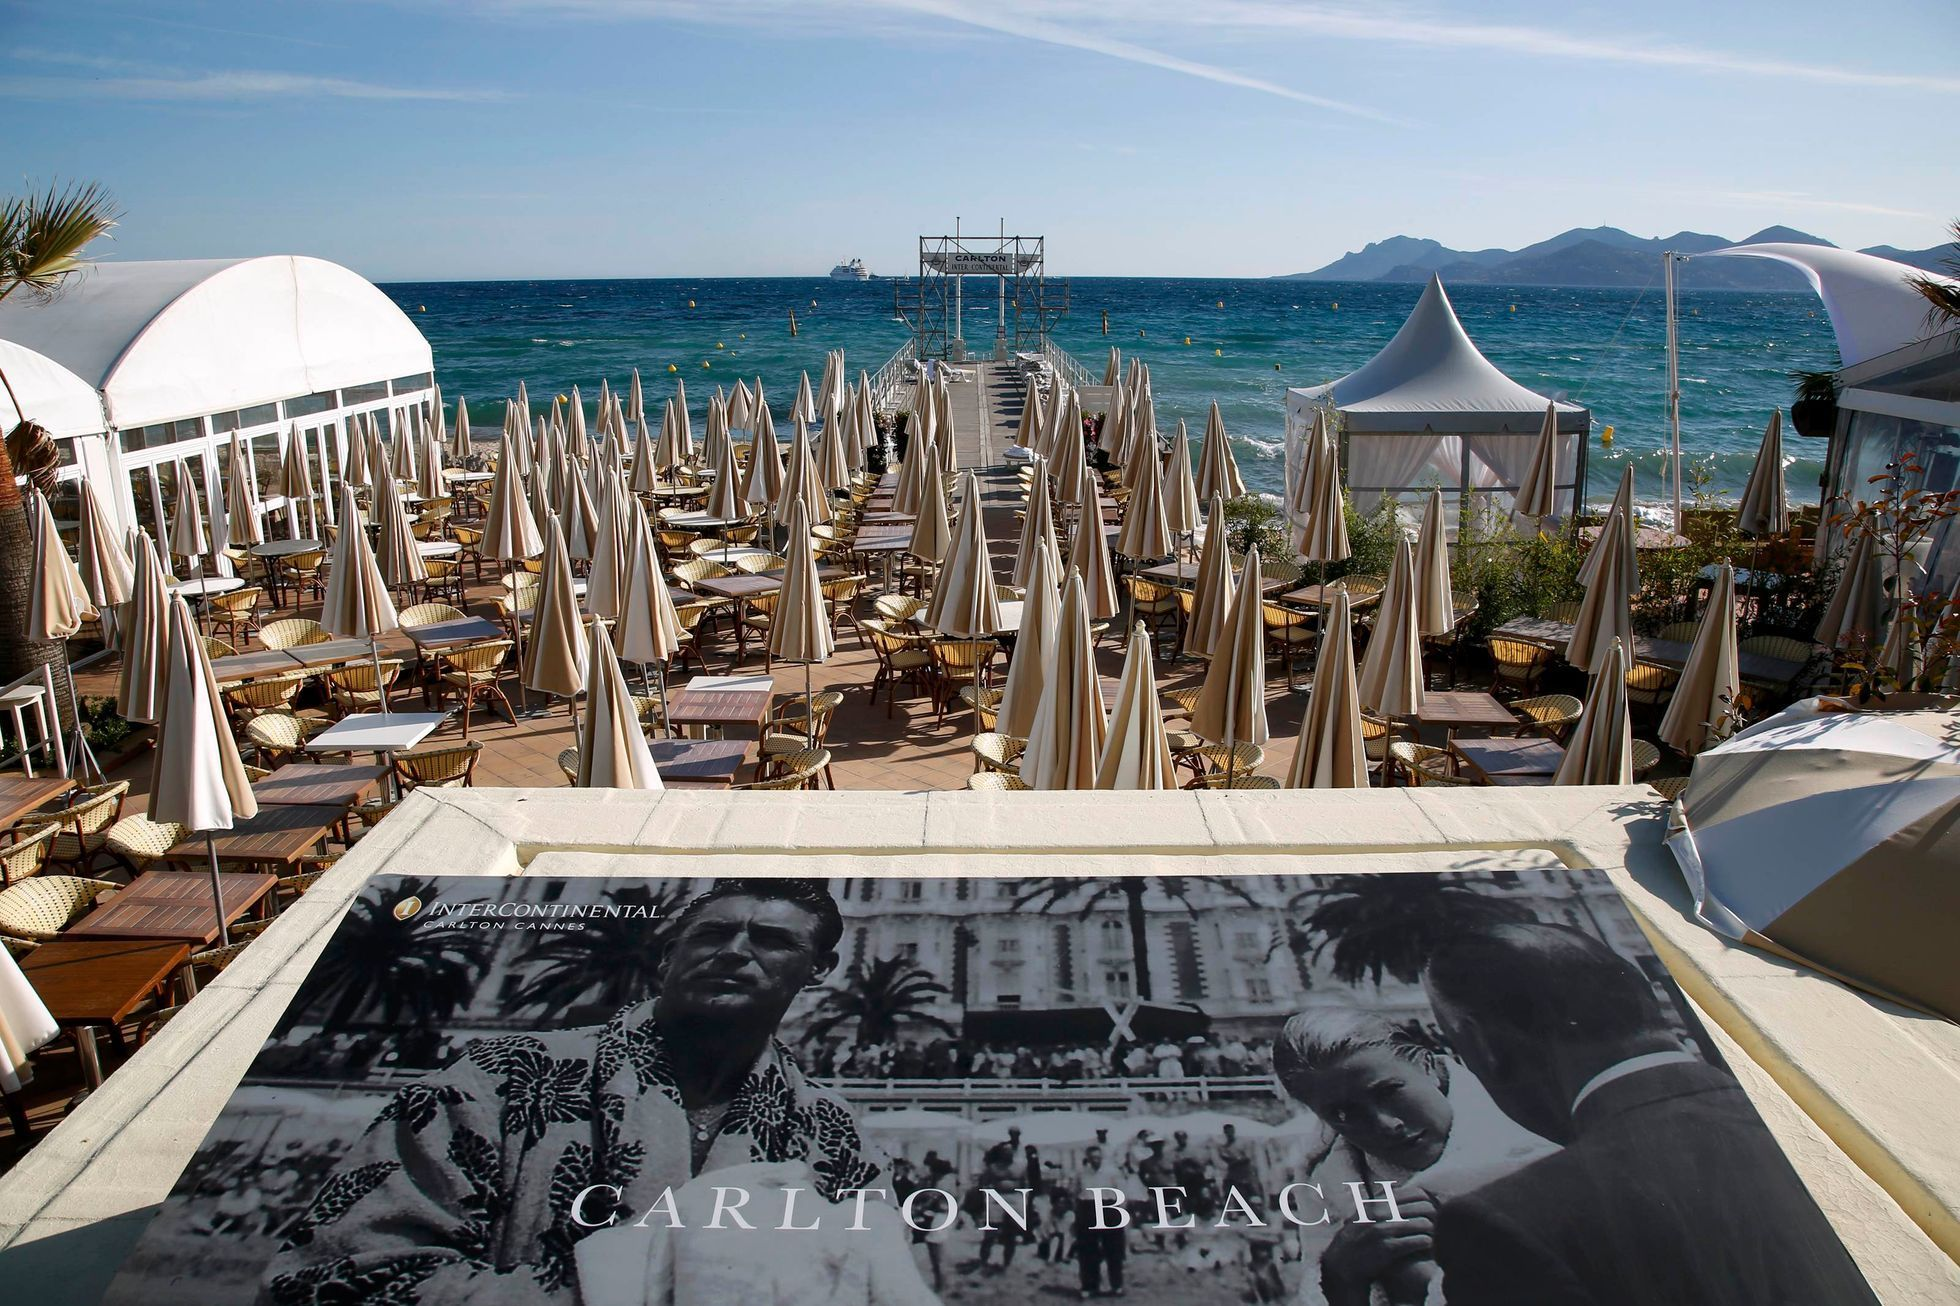 View of the Carlton Hotel pier as preparations continue ahead of the 67th Cannes Film Festival in Cannes